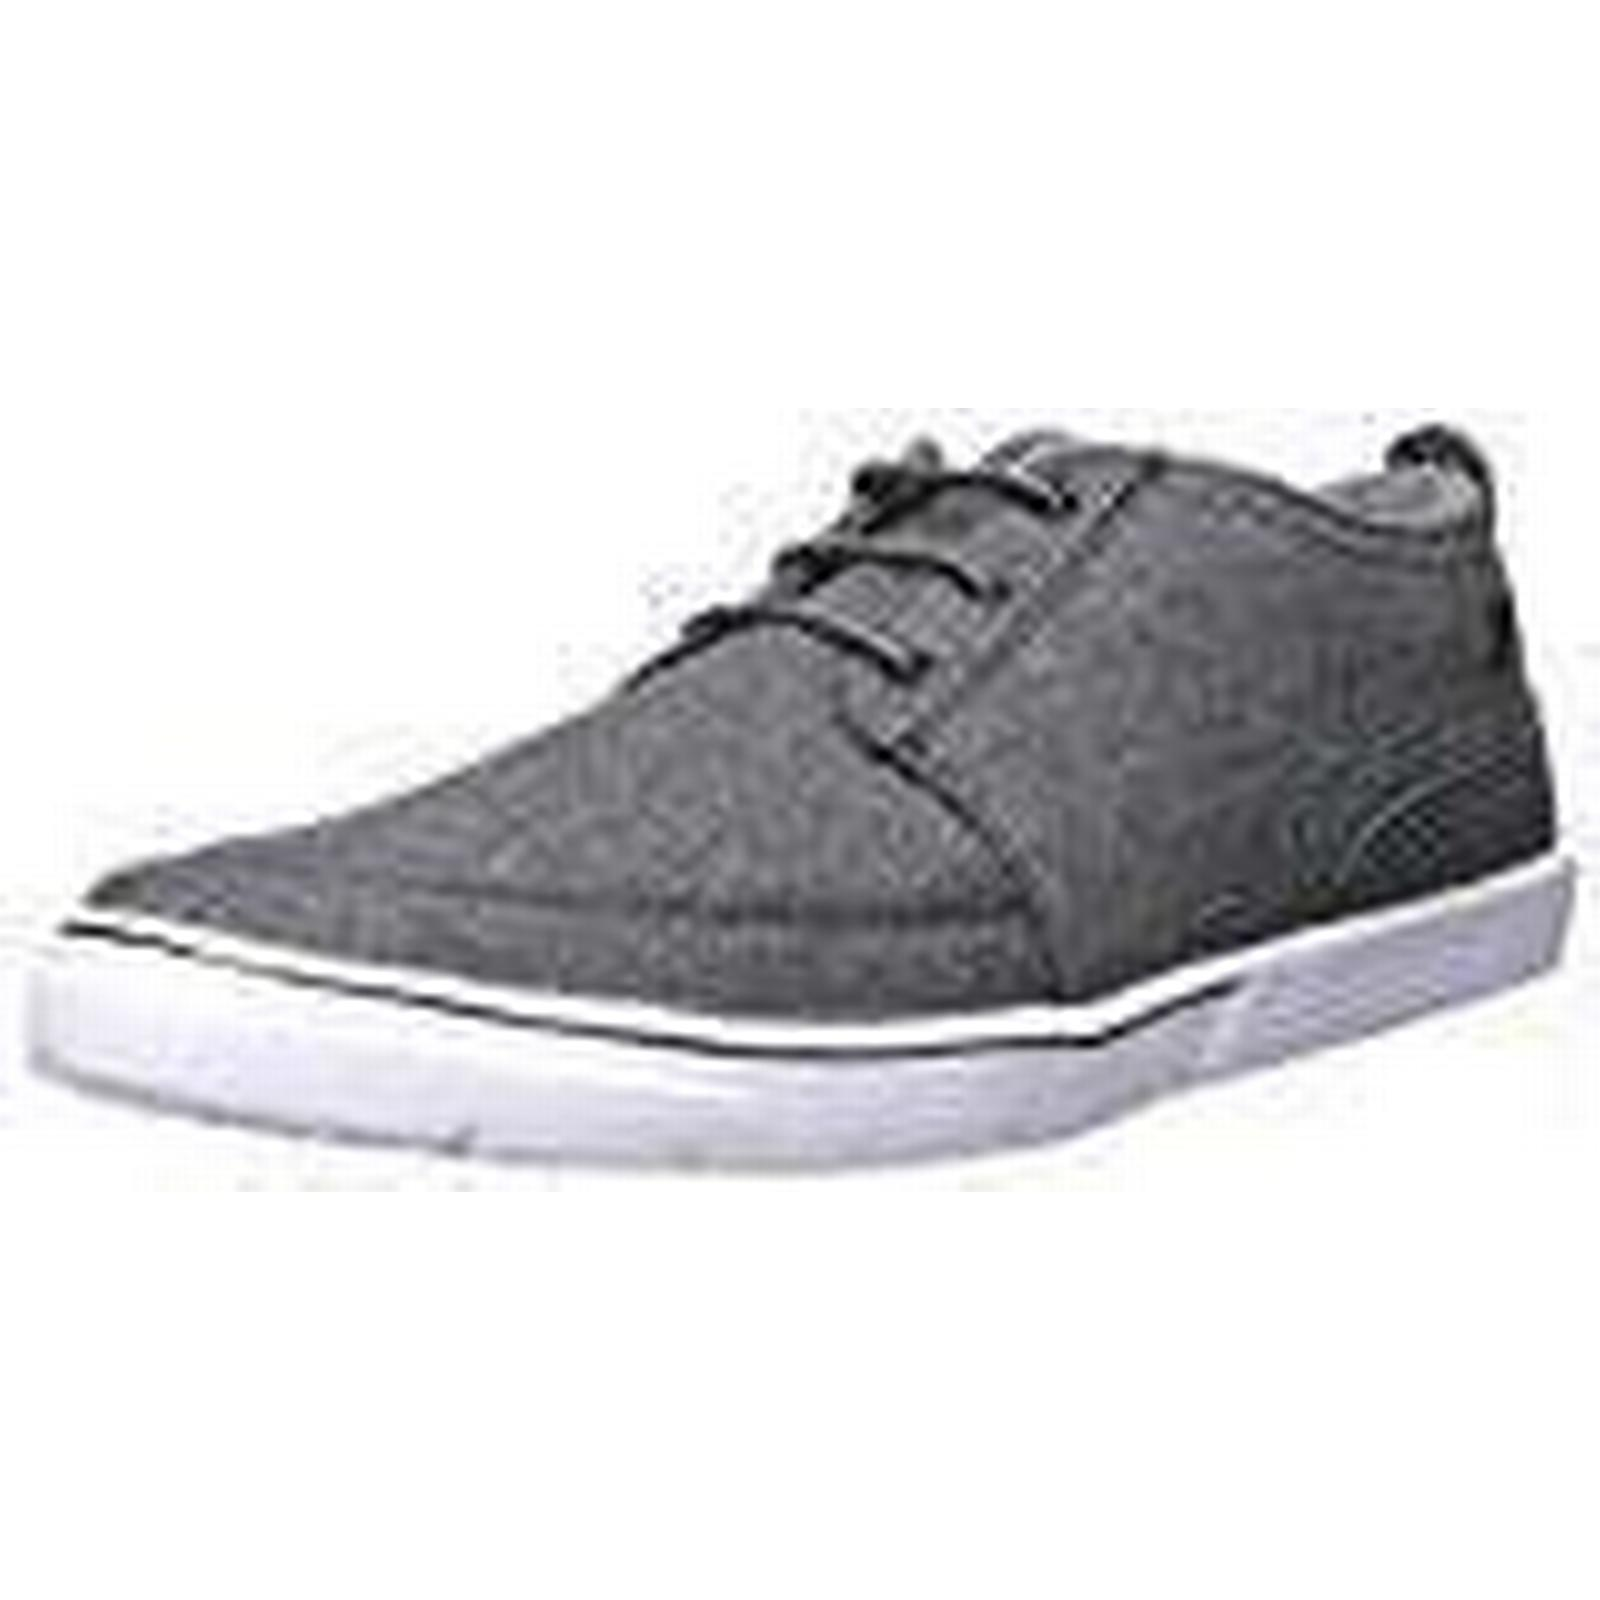 Under Armour Men's Ua M and Street Encounter Iii Beach and M Pool Shoes, Black (Black 002), 8 UK ea3287